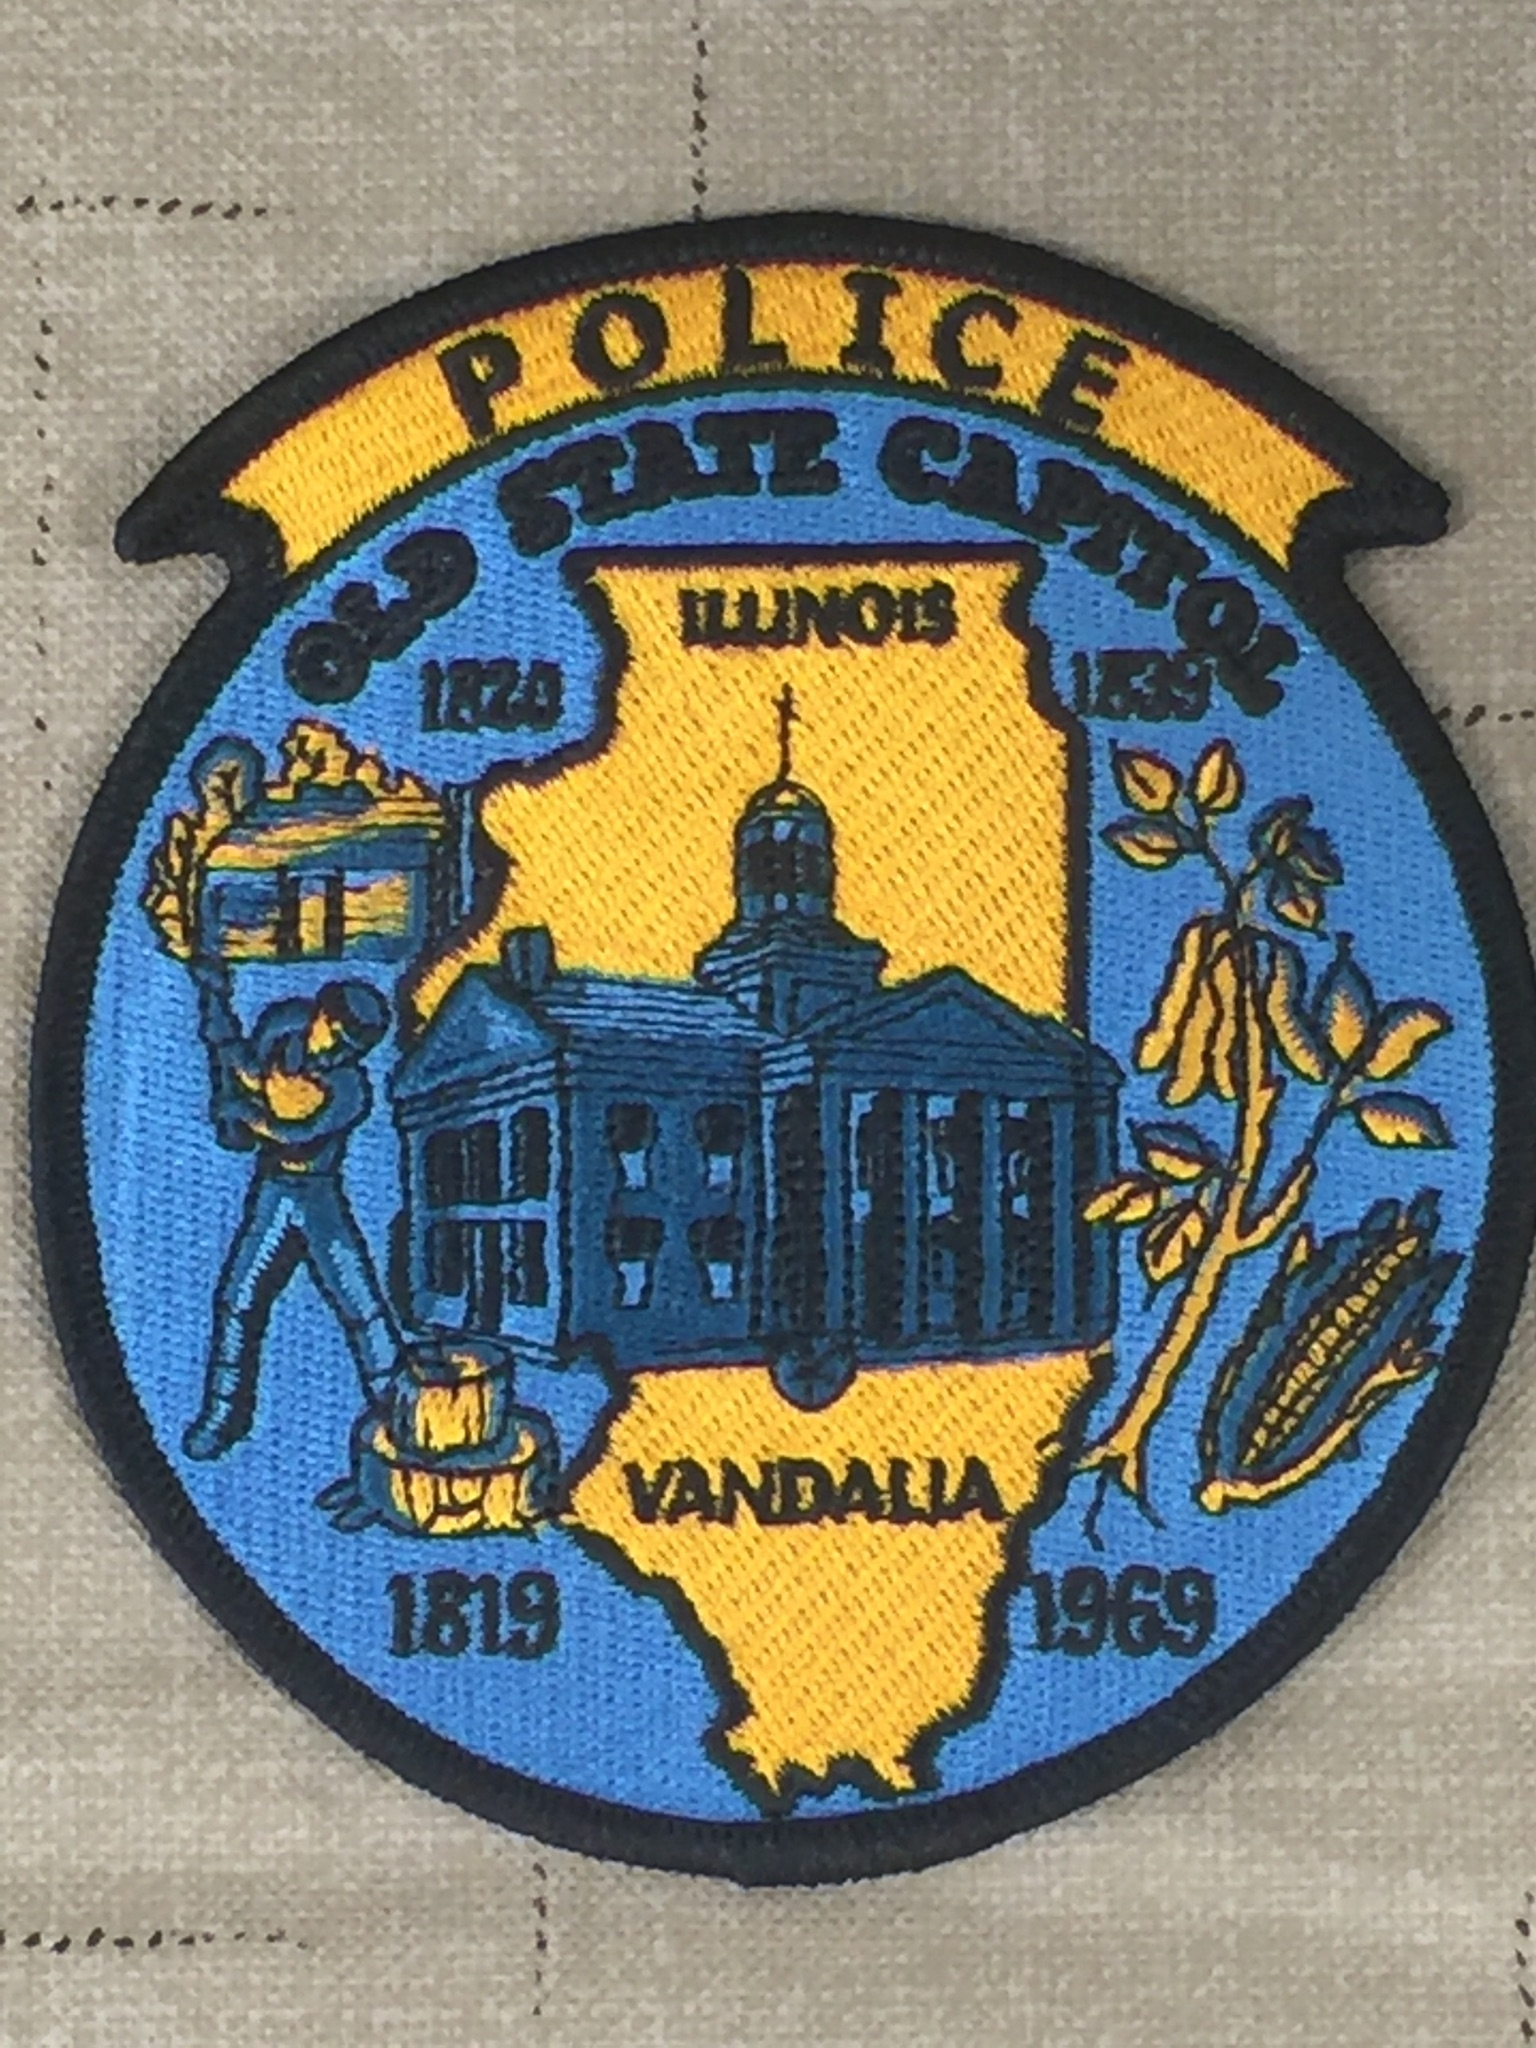 Vandalia PD alerting the public about IRS Scam